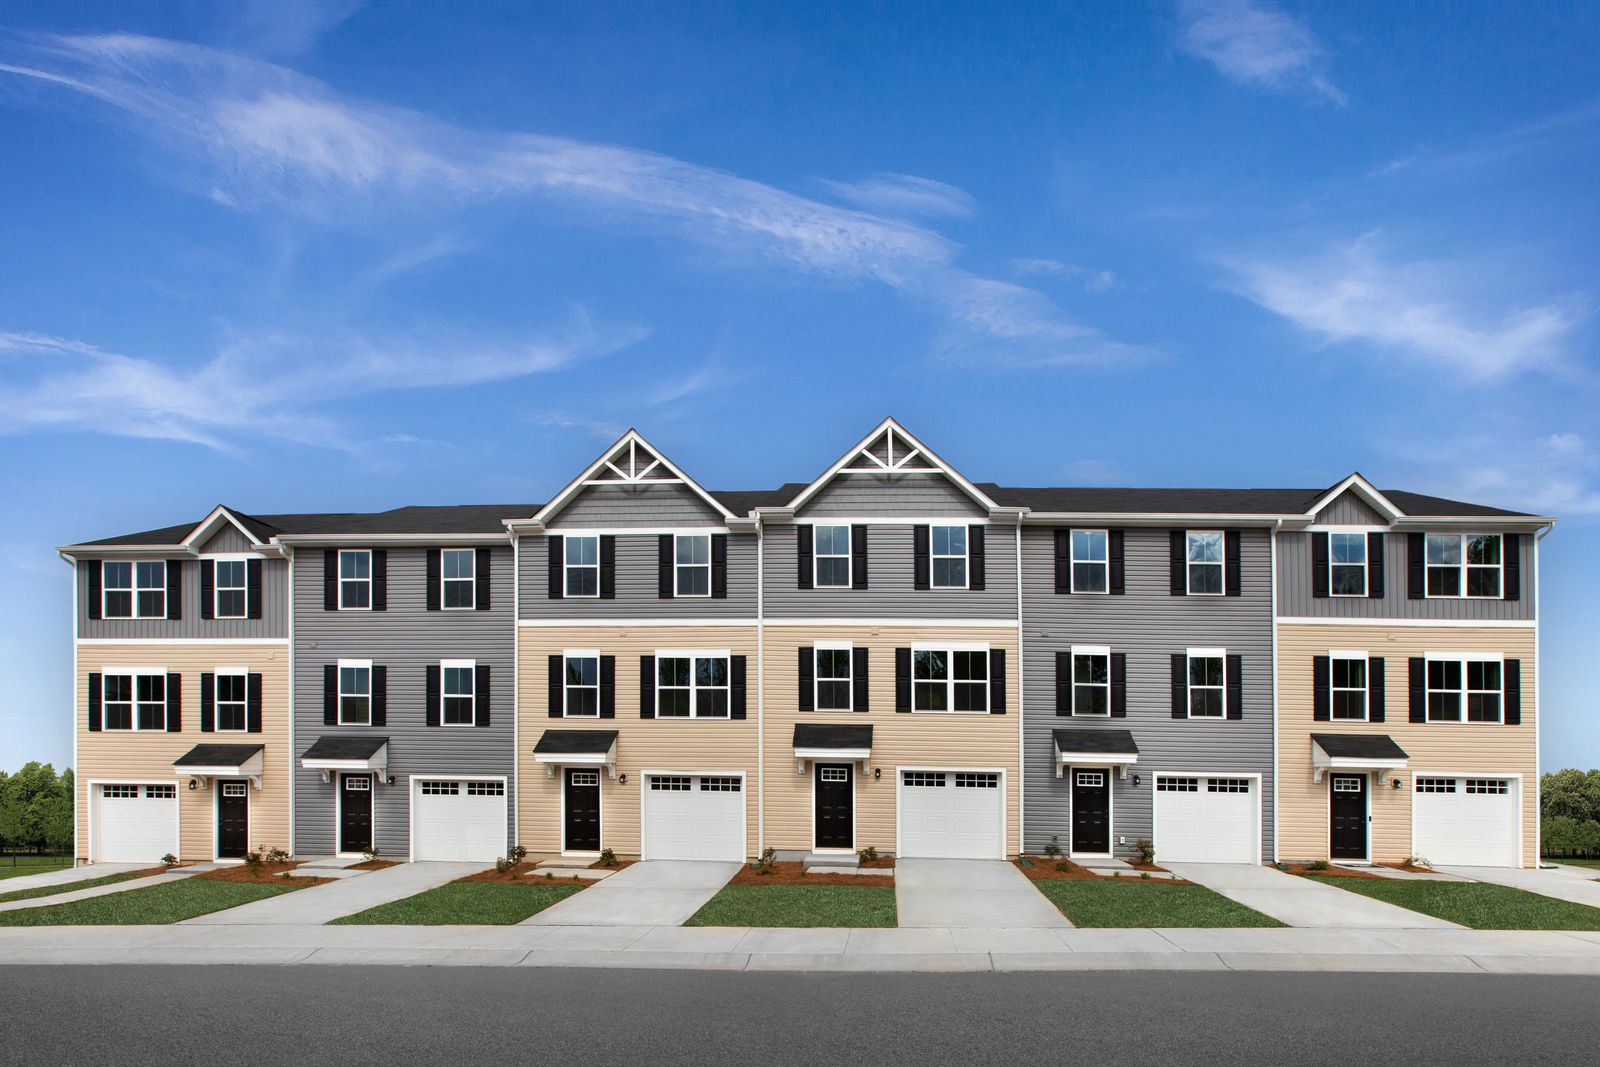 The area's lowest-priced townhomes where you can own for the same or less than rent.:Located in the heart of Easley and 2 mins. to Hwy. 123. Interested? Schedule a visit with us today!